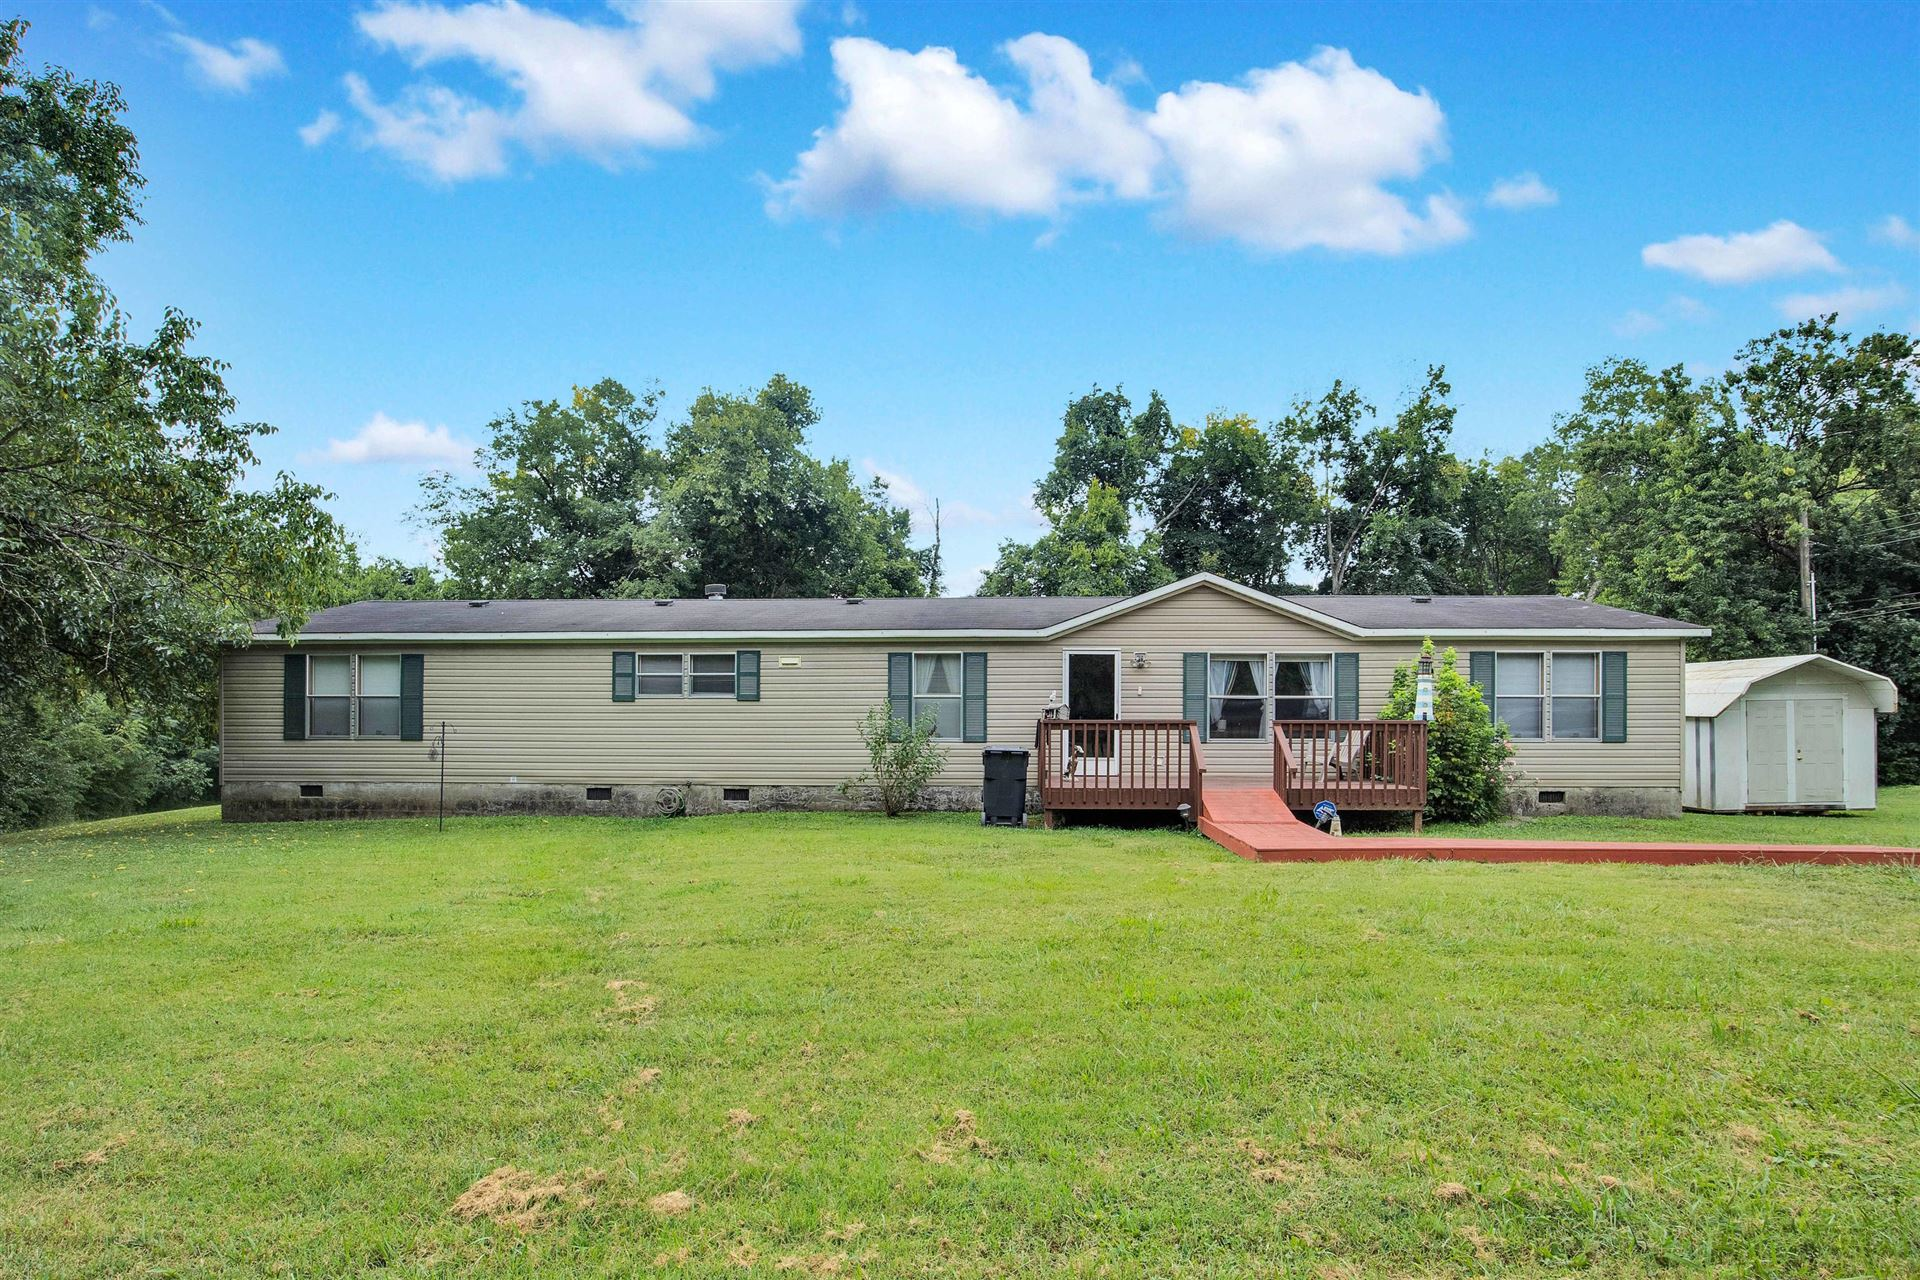 1140 NE Colonial Ave, Knoxville, TN 37917 - MLS#: 1163089